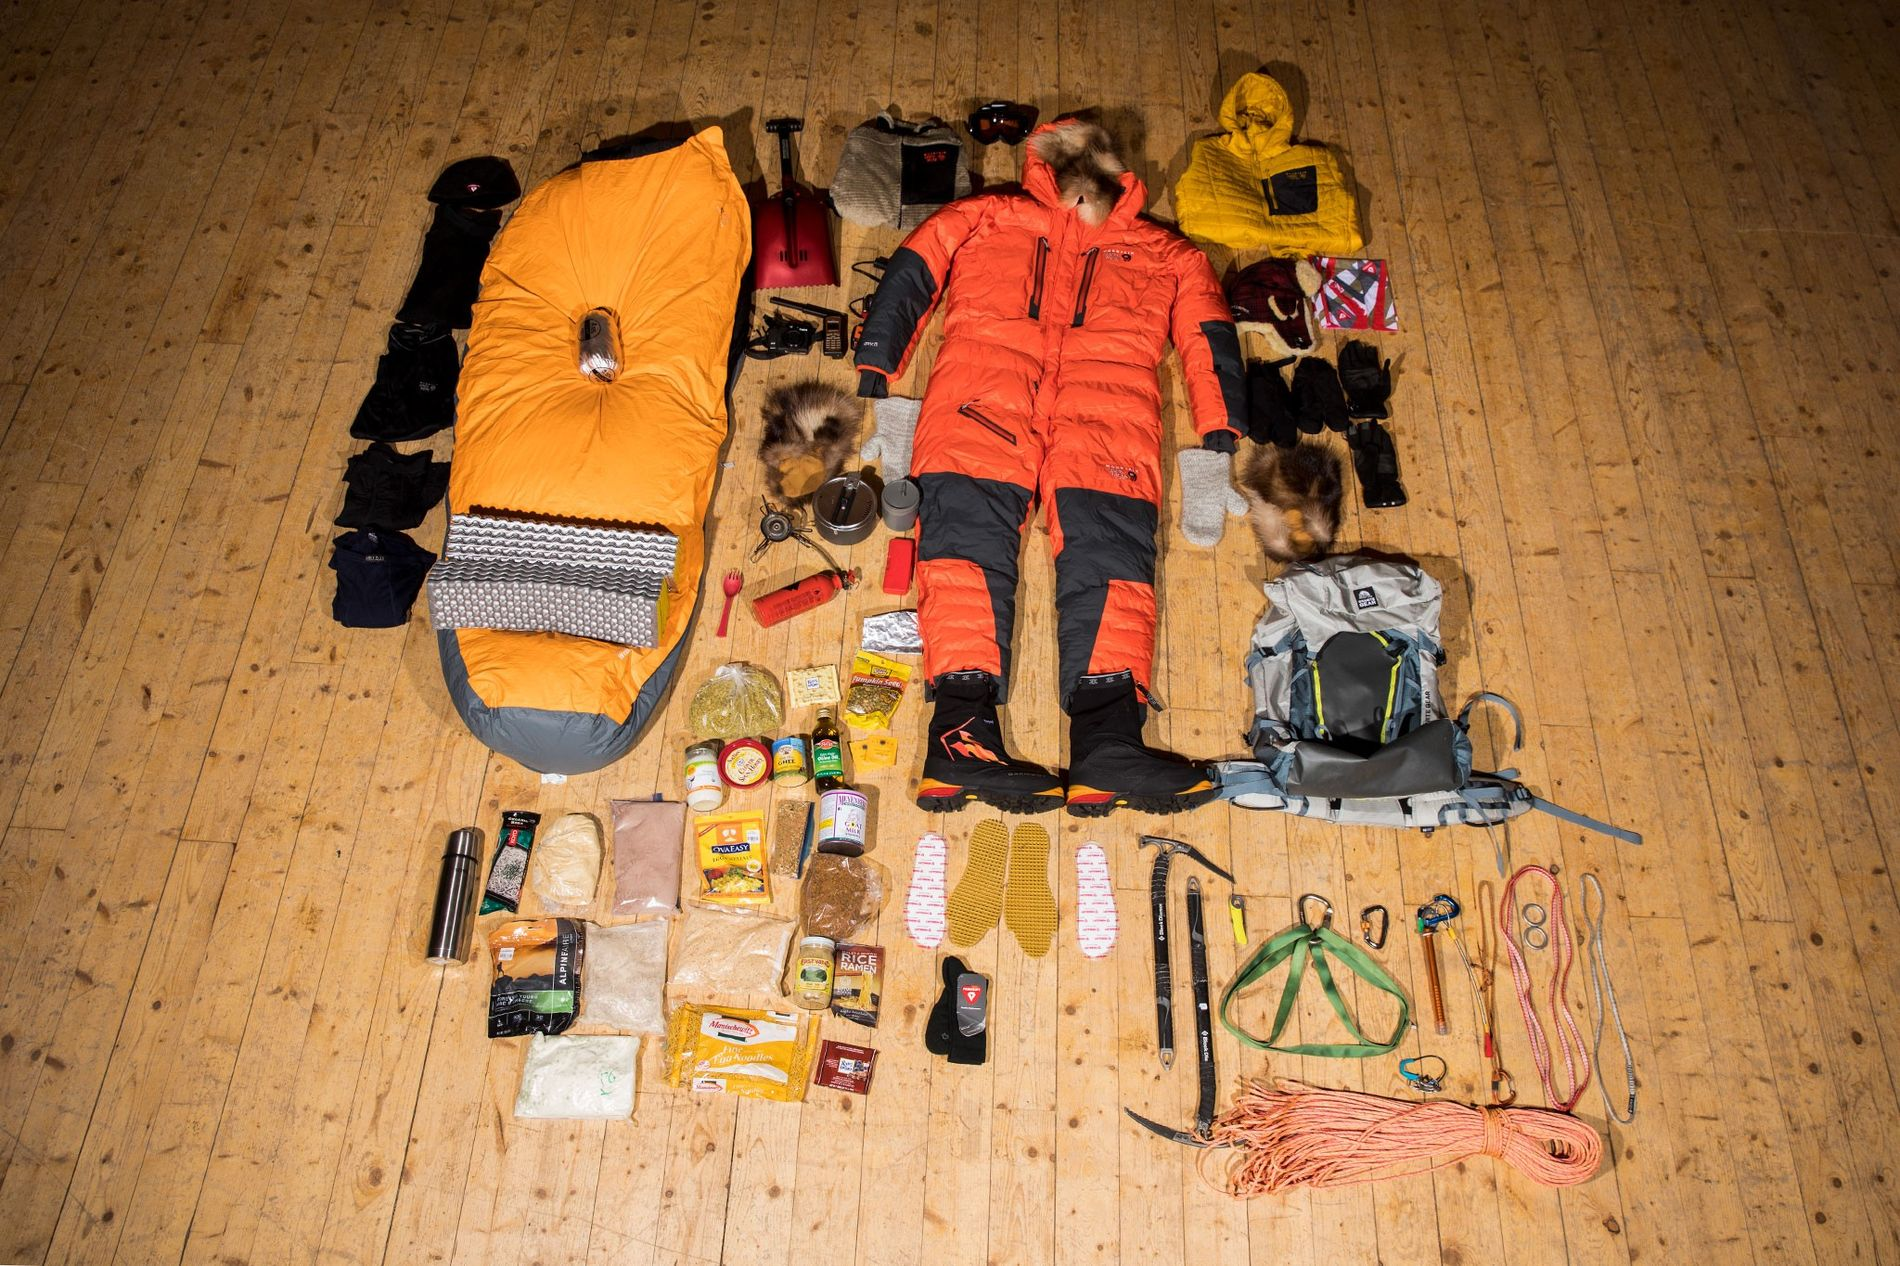 For a 19-day climb up Alaska's Mount Hunter, Arctic explorer Lonnie Dupre will carry 27kg of food, supplies, and equipment, much of it pictured above. He uses gramme and bathroom scales to monitor weight.